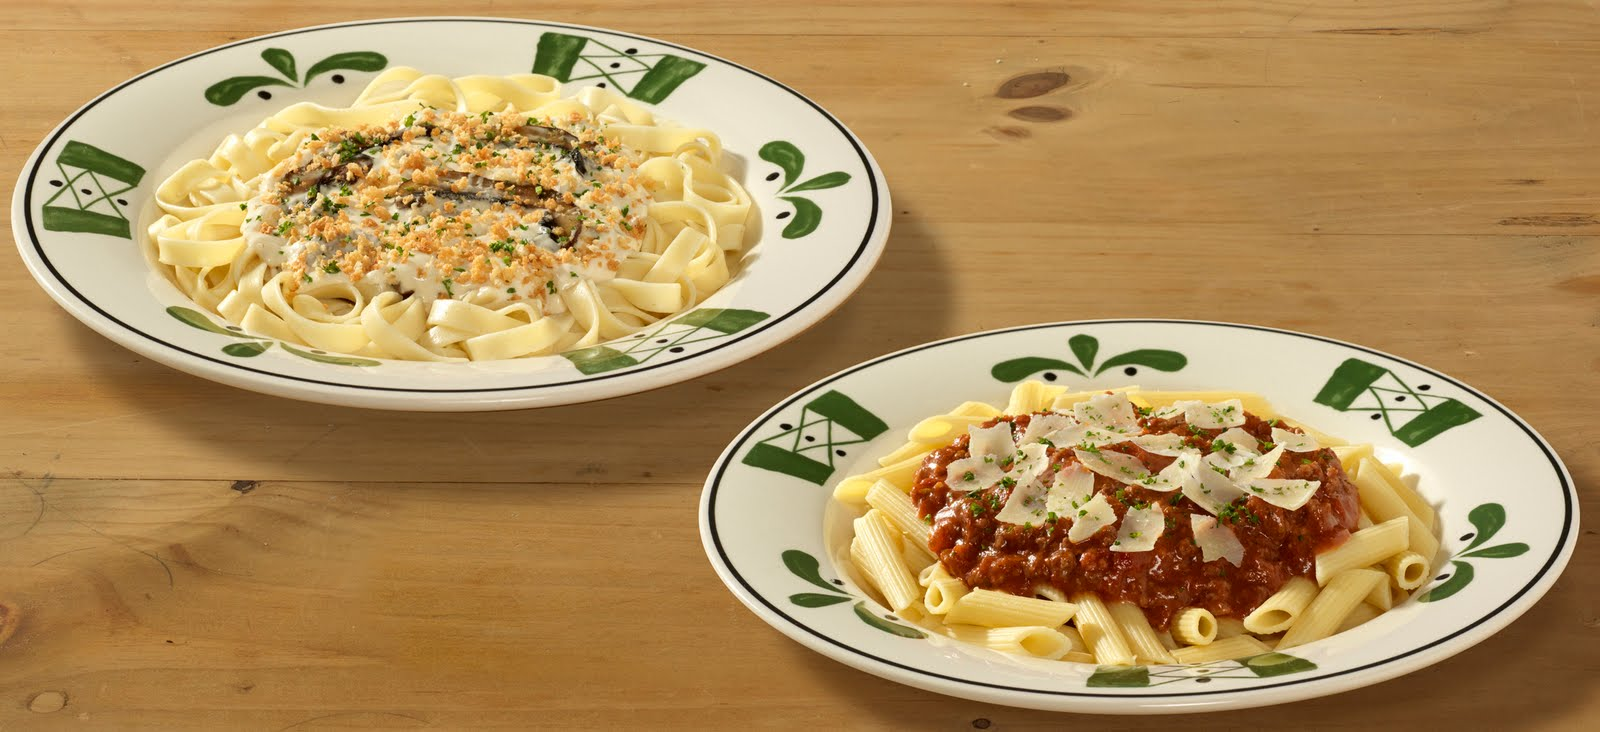 Does Olive Garden Have Pizza | Latest News On Design & Architecture.